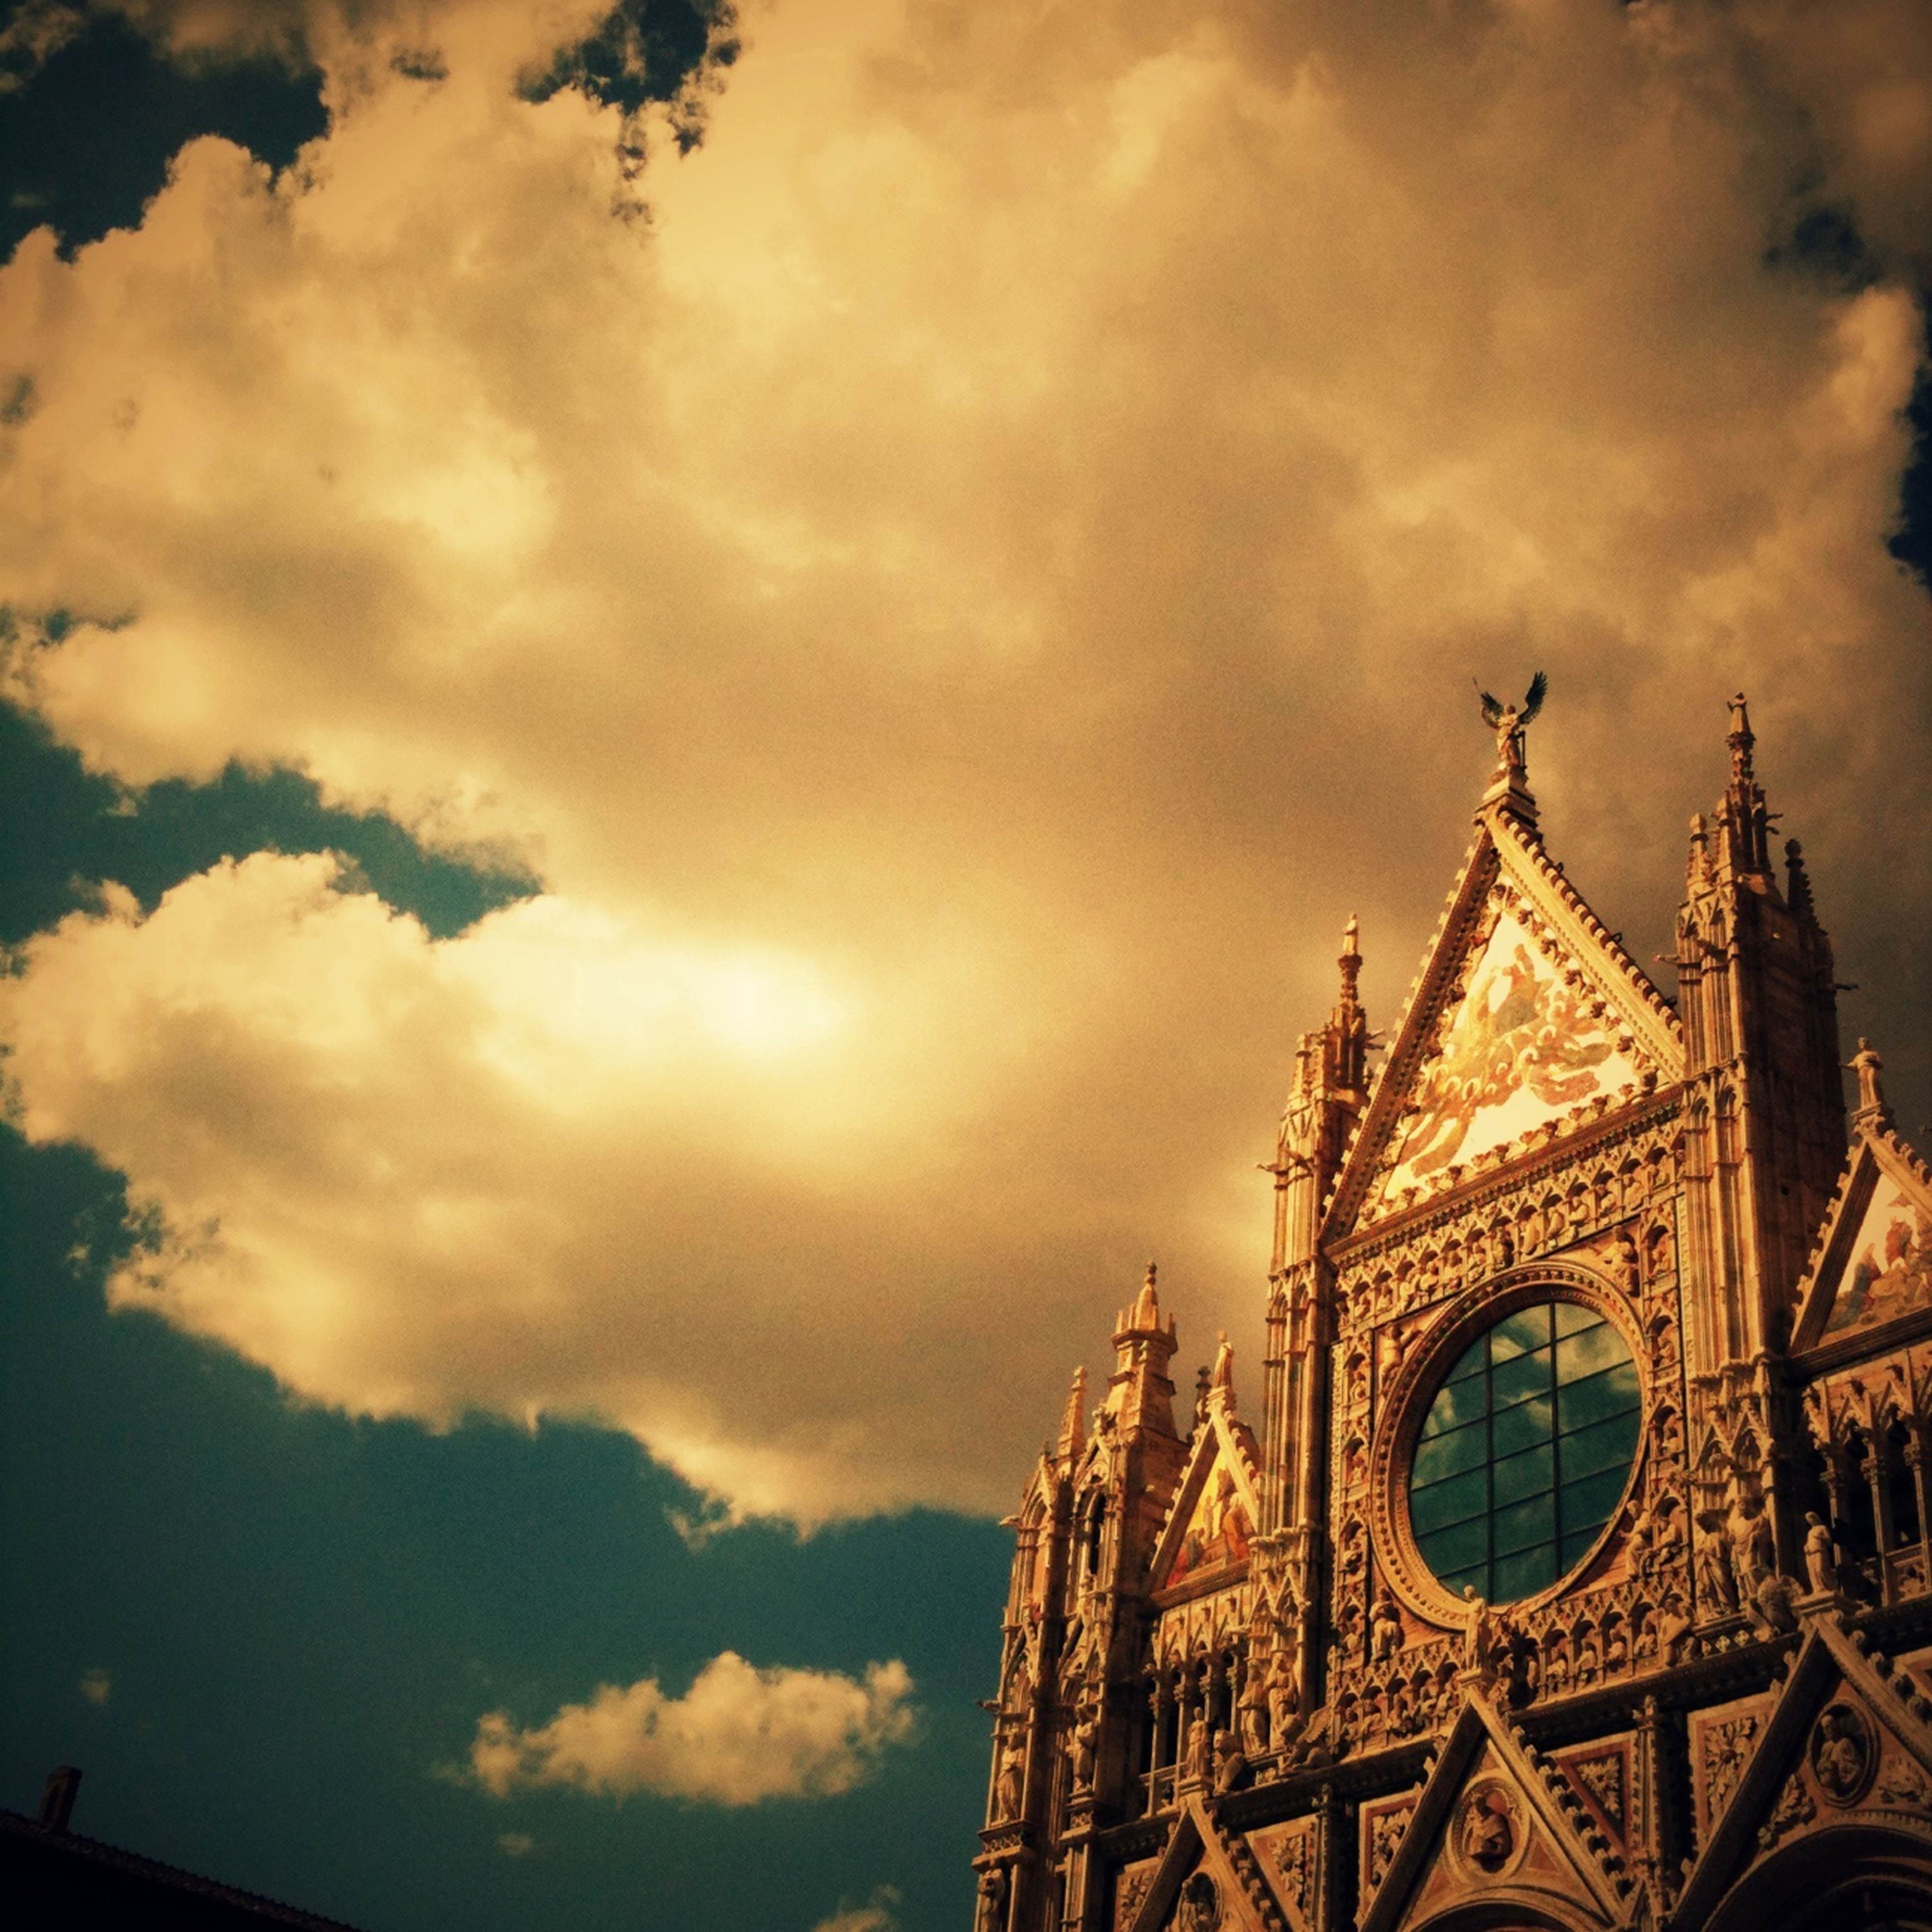 architecture, low angle view, sky, built structure, cloud - sky, building exterior, cloudy, place of worship, religion, church, high section, spirituality, cloud, cathedral, outdoors, no people, history, clock tower